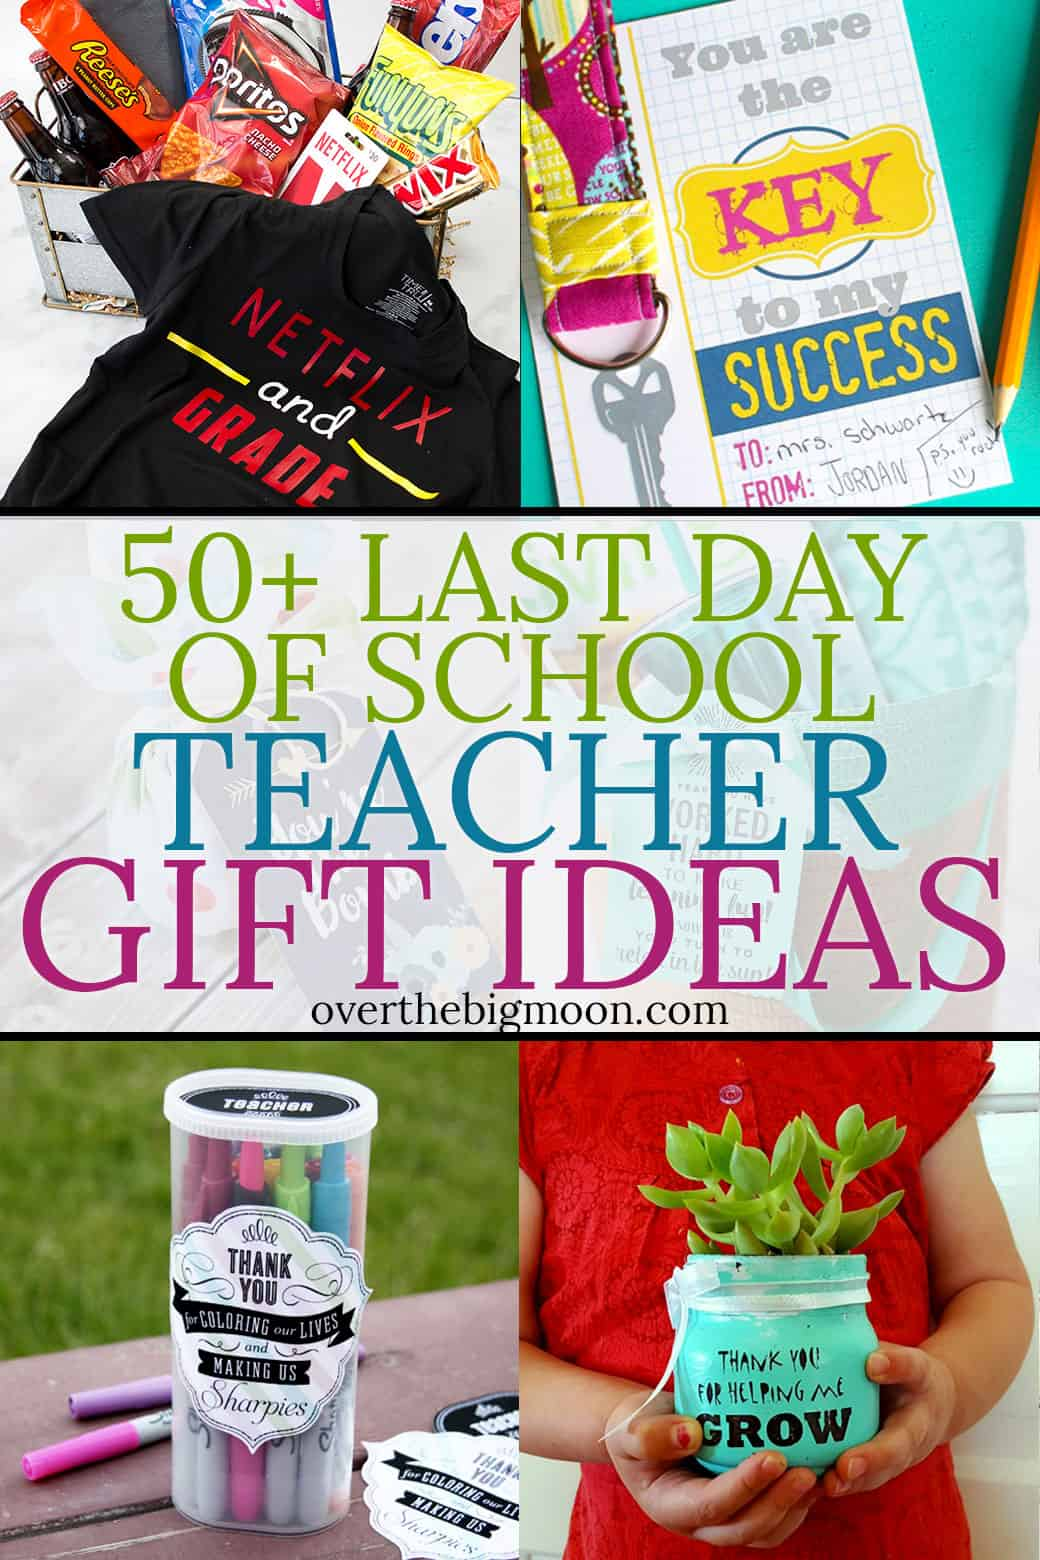 50+ Last Day of School Teacher Gift Ideas! Tons of ideas - some DIY, some simple printables, gift card ideas and more! From overthebigmoon.com!